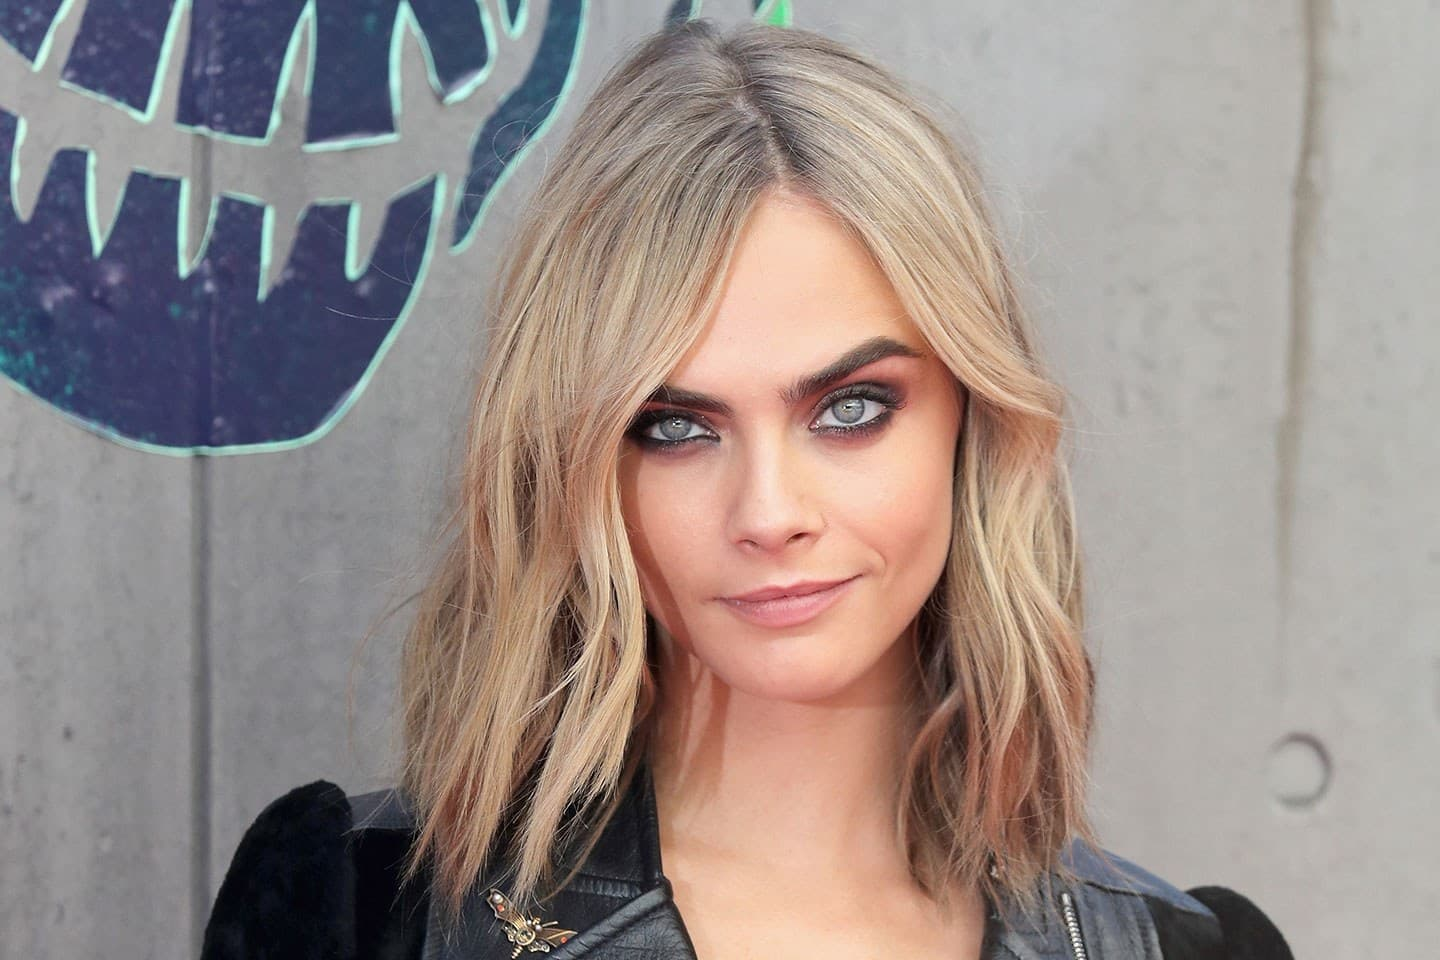 I Hated Feeling Depressed: Cara Delevingne Talks About Her Struggle With Depression